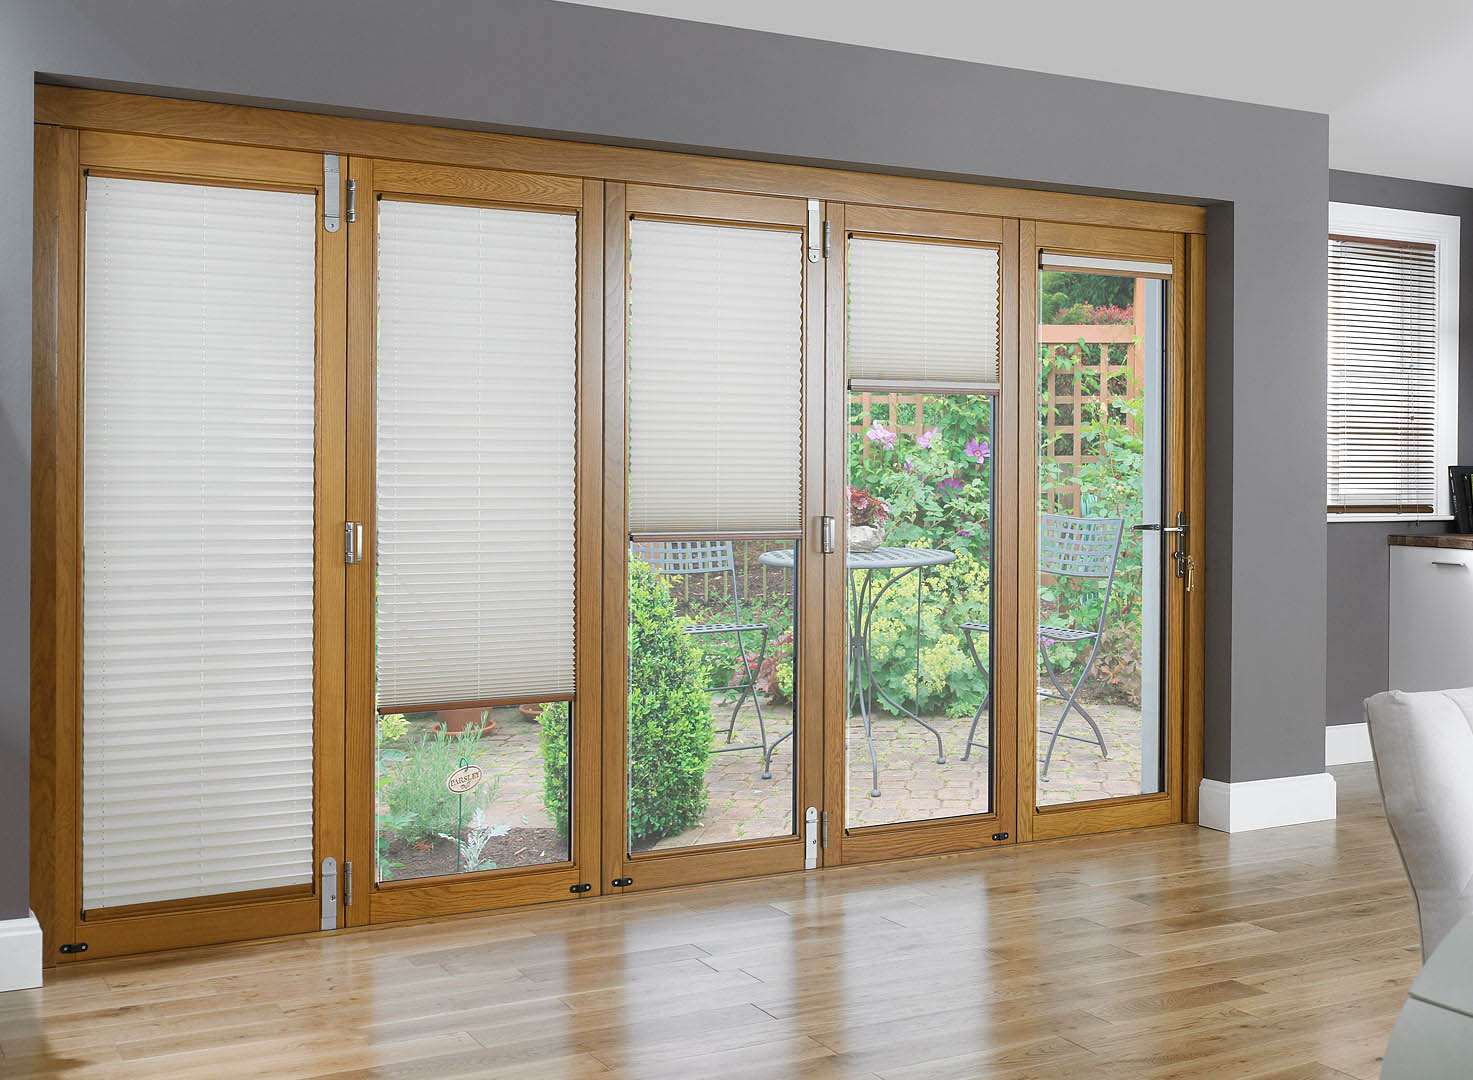 Sliding Patio Door Blinds : Window treatments for sliding glass doors ideas hgnv